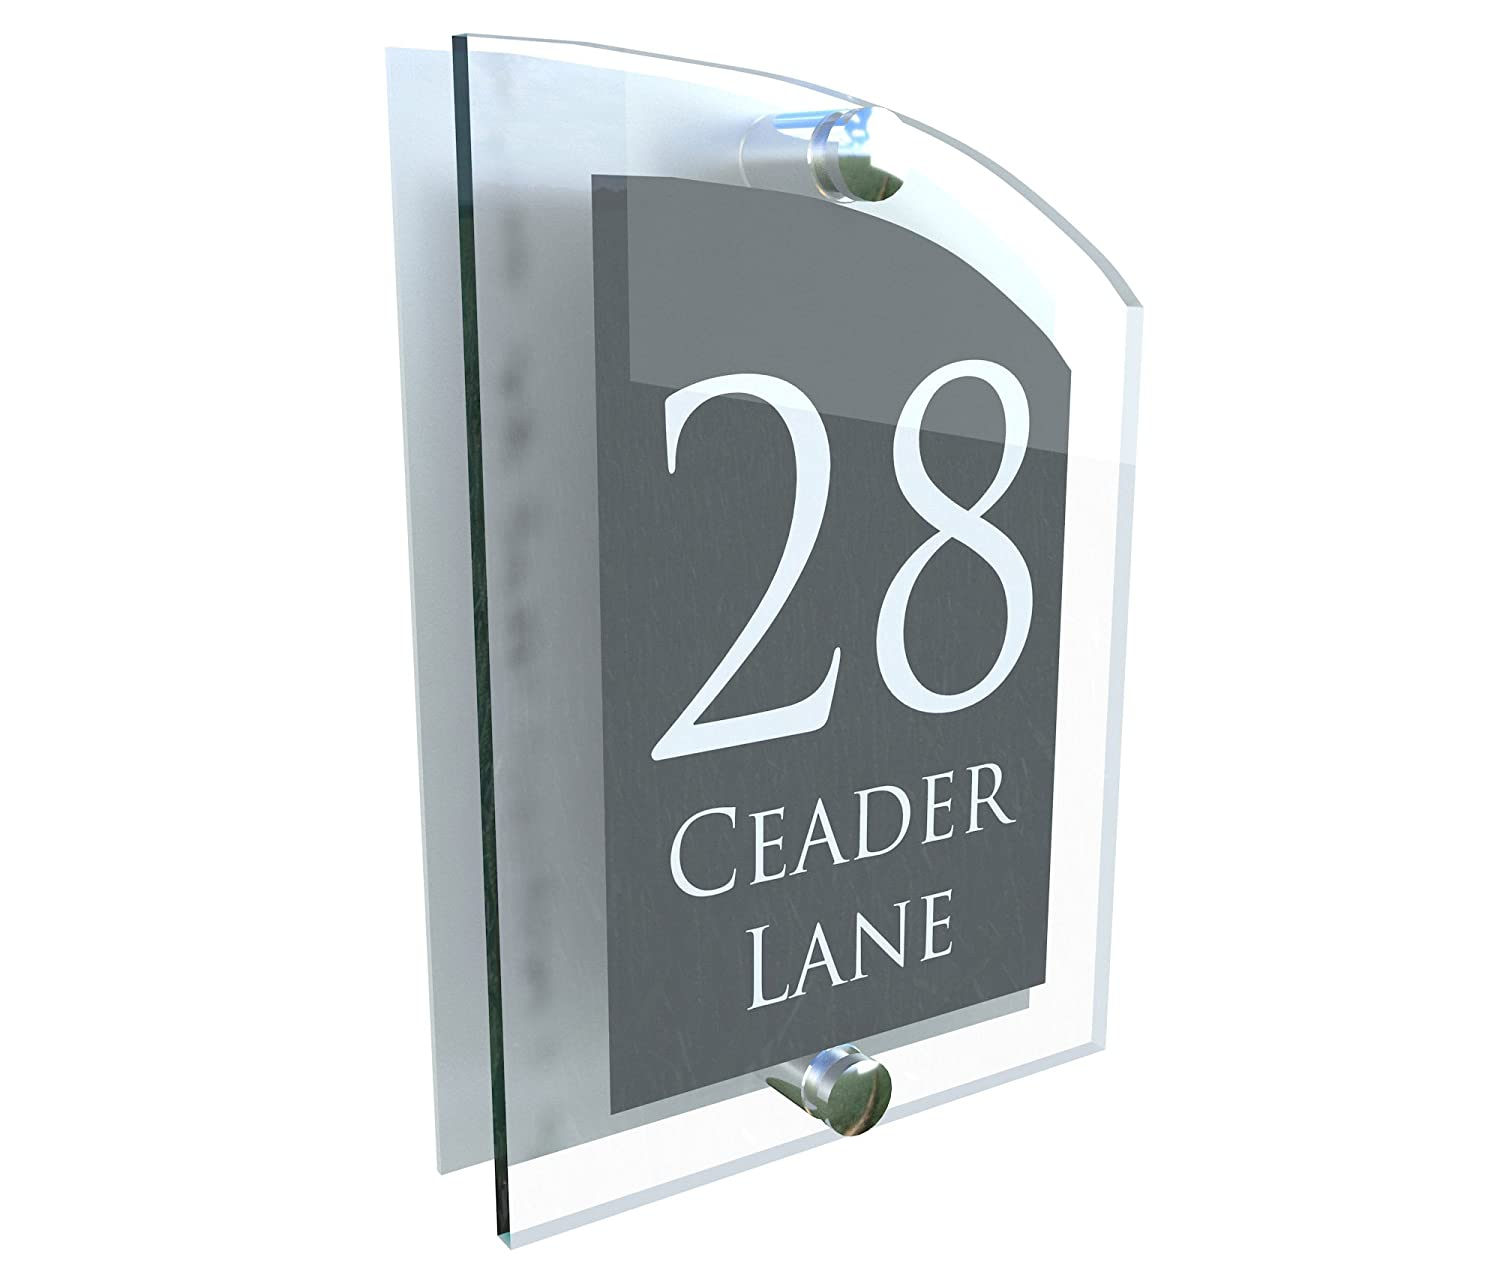 ARCHED ACRYLIC HOUSE SIGN | UV PRINTED | Genuine Perspex | PLAQUE DOOR NUMBER STREET GLASS EFFECT ACRYLIC ALUMINIUM NAME ARCA5-28WA-S-C K Smart Sign Ltd